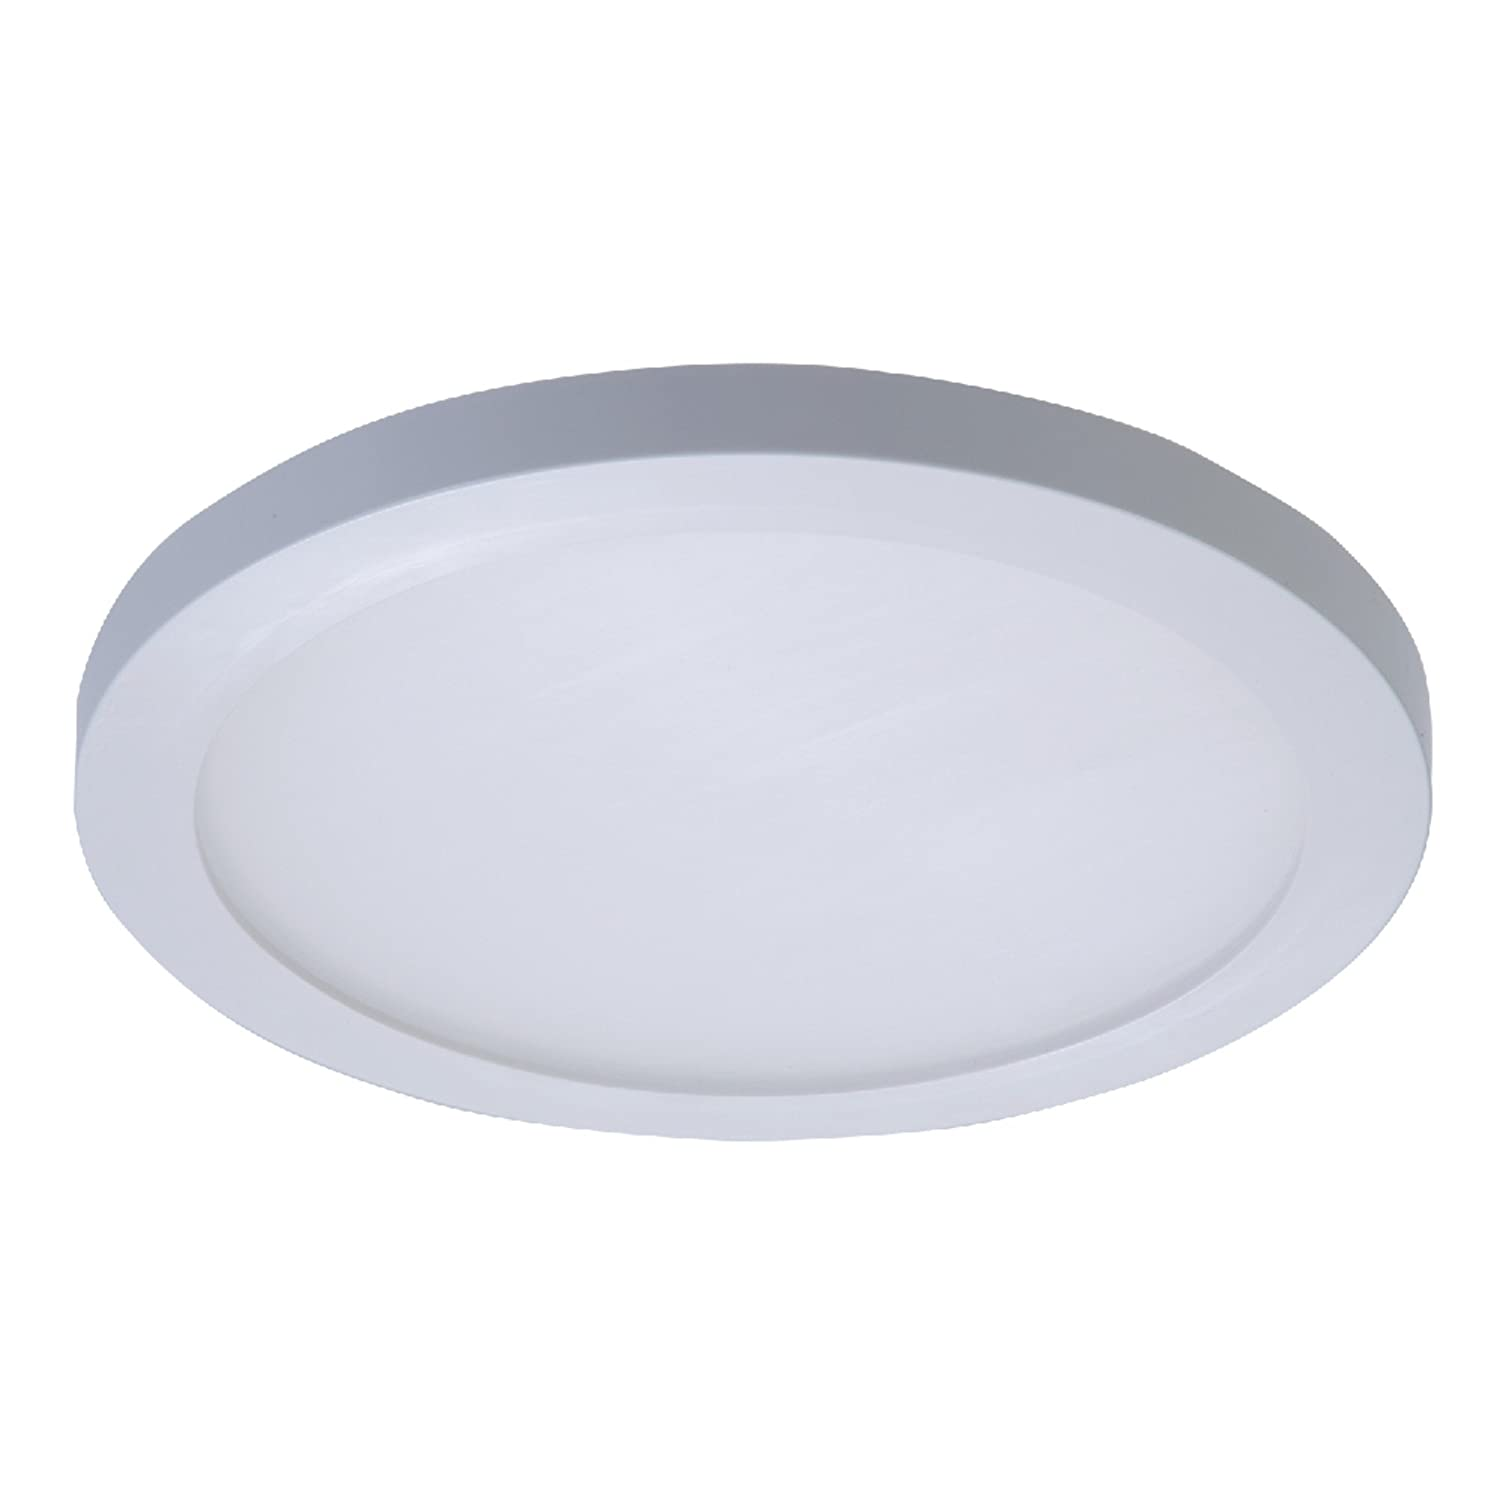 Halo smd6r6950wh smd 5000k integrated led surface mount recessed round trim 5 in 6 in white